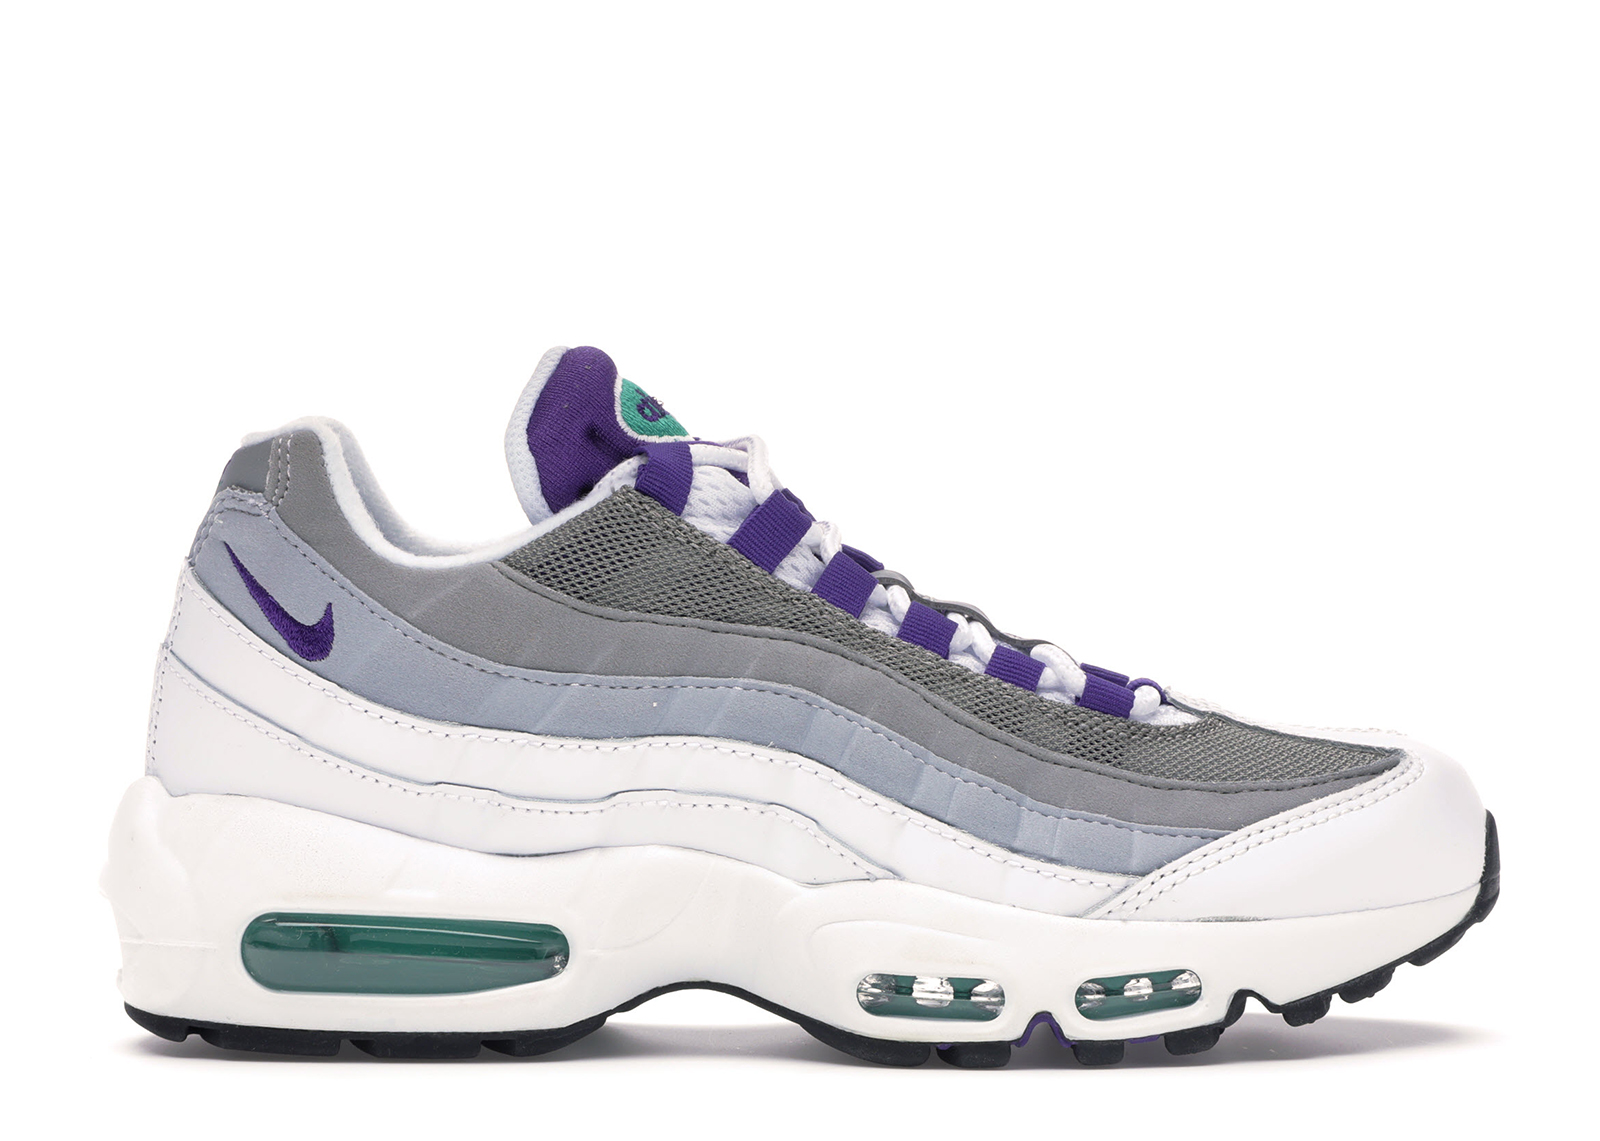 Air Max 95 Grape 2018 (W)